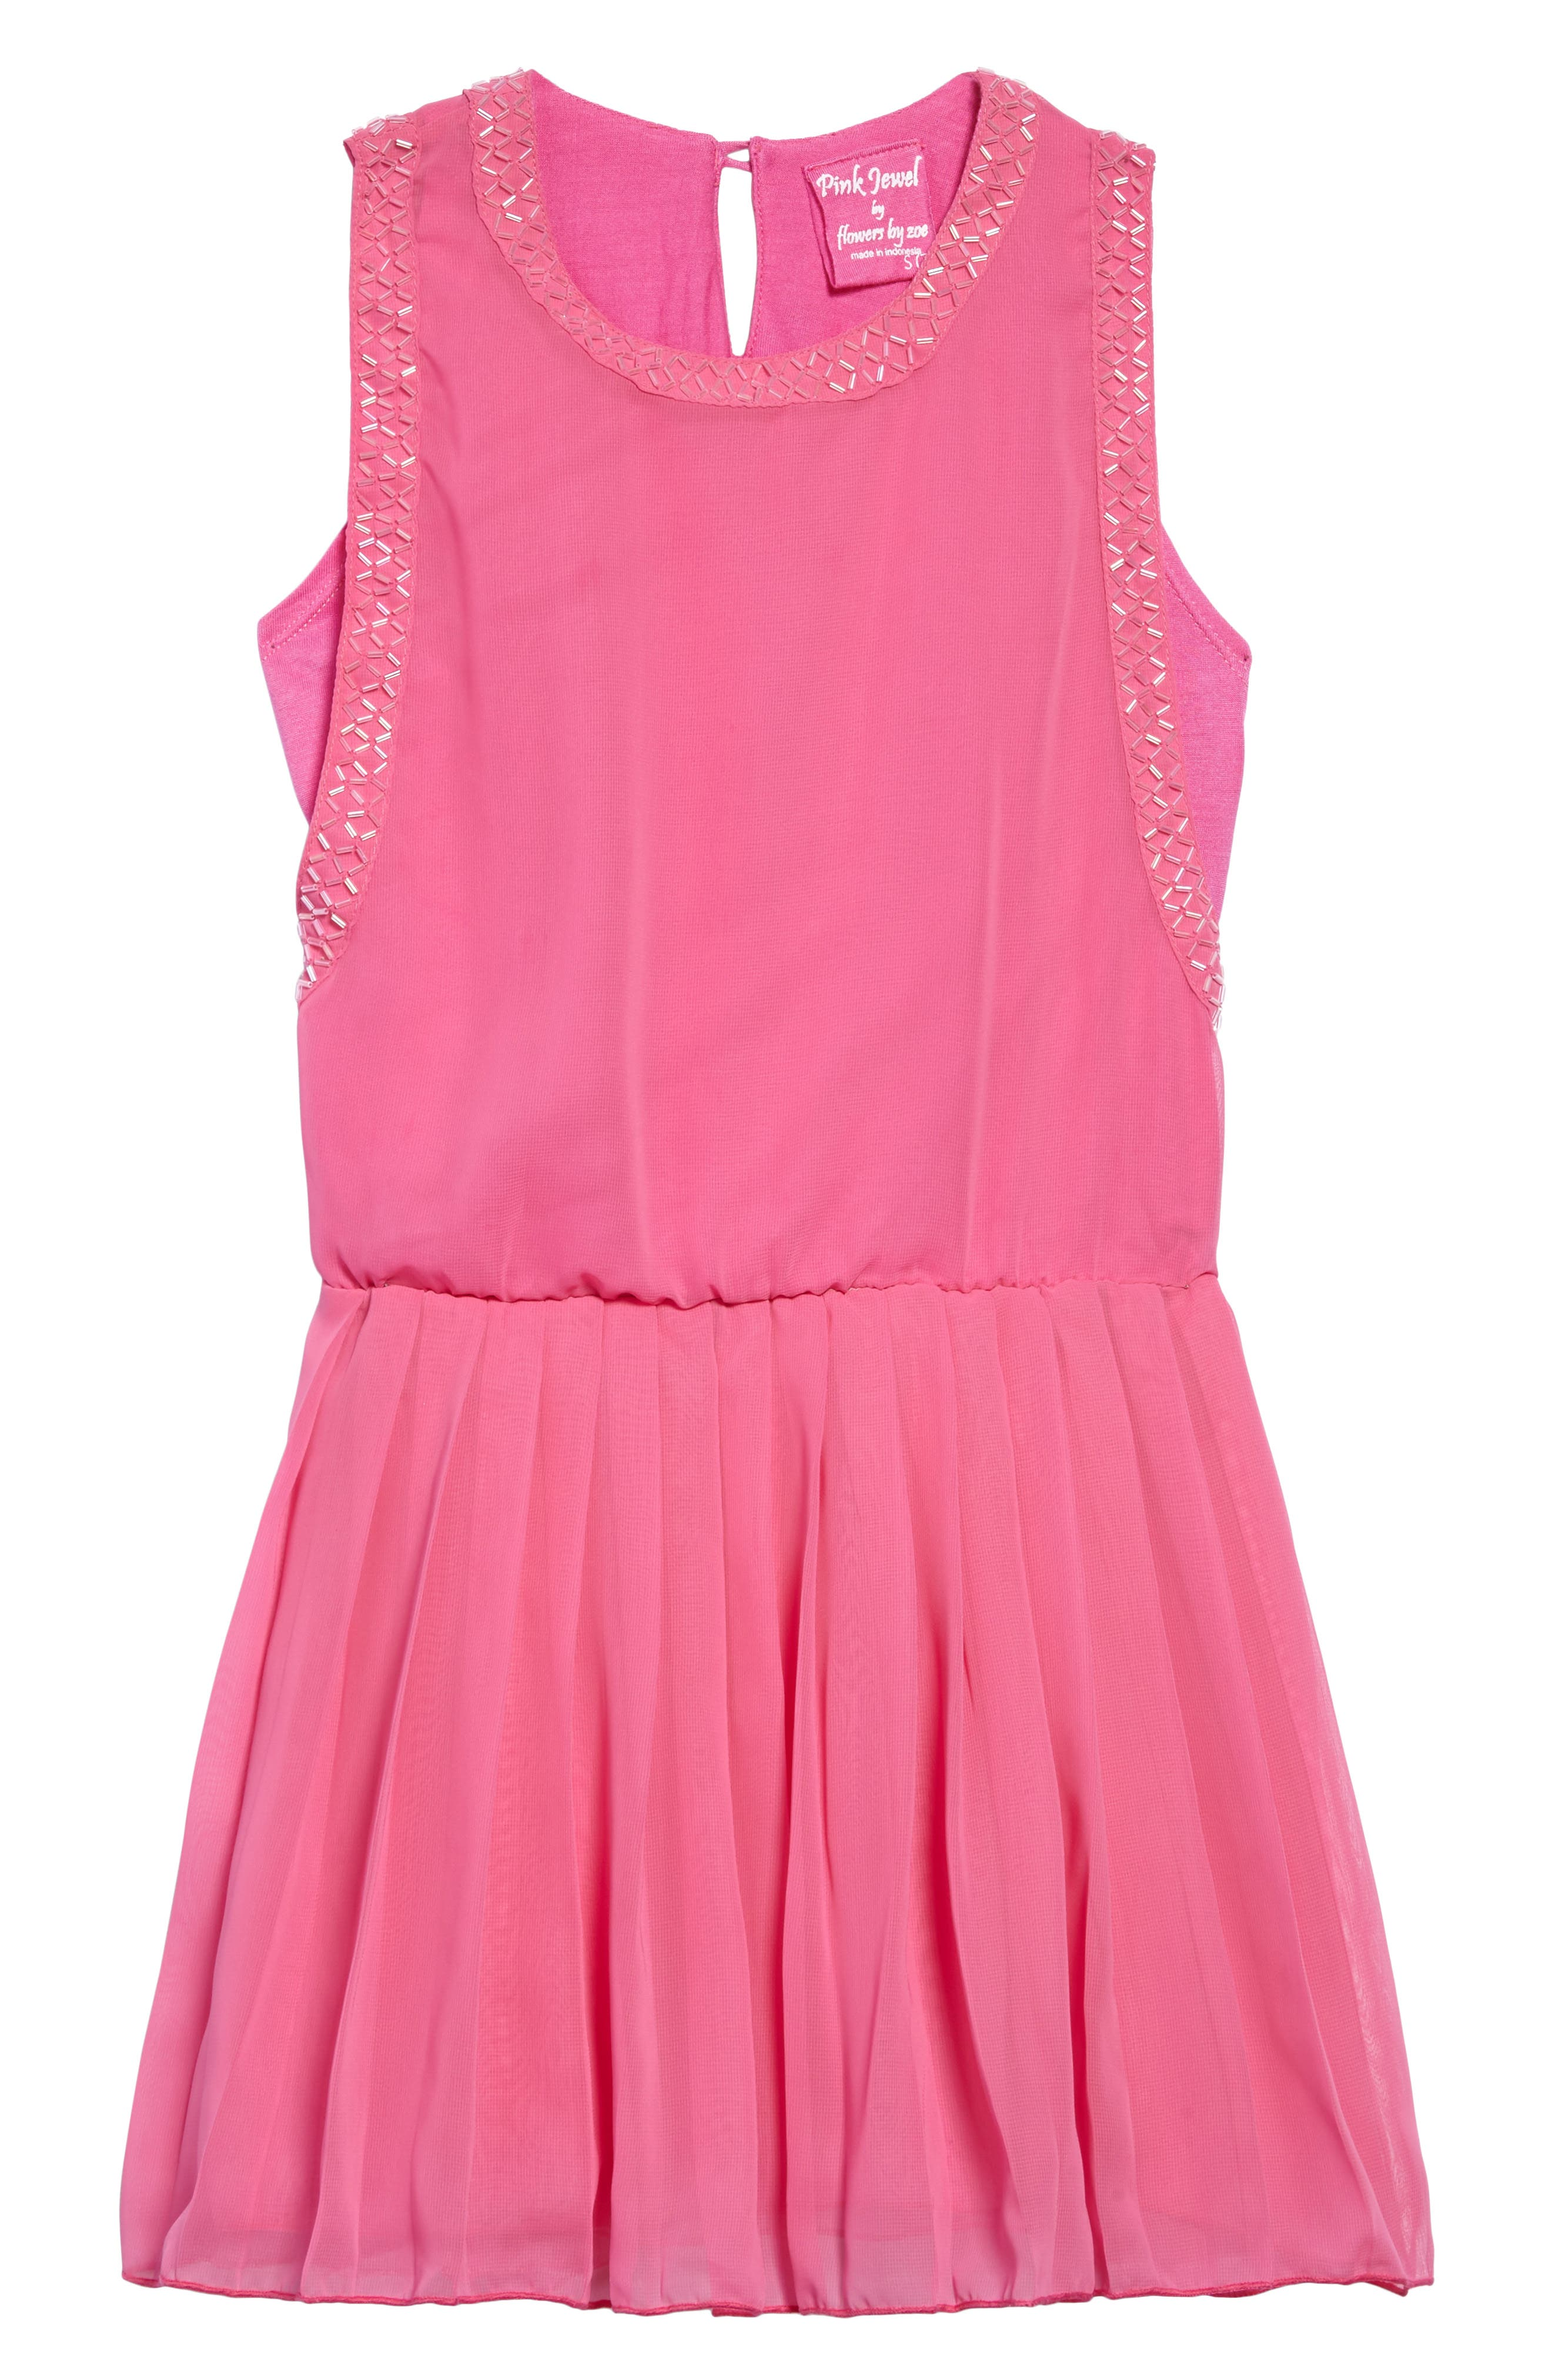 Beaded Chiffon Dress,                         Main,                         color, Pink